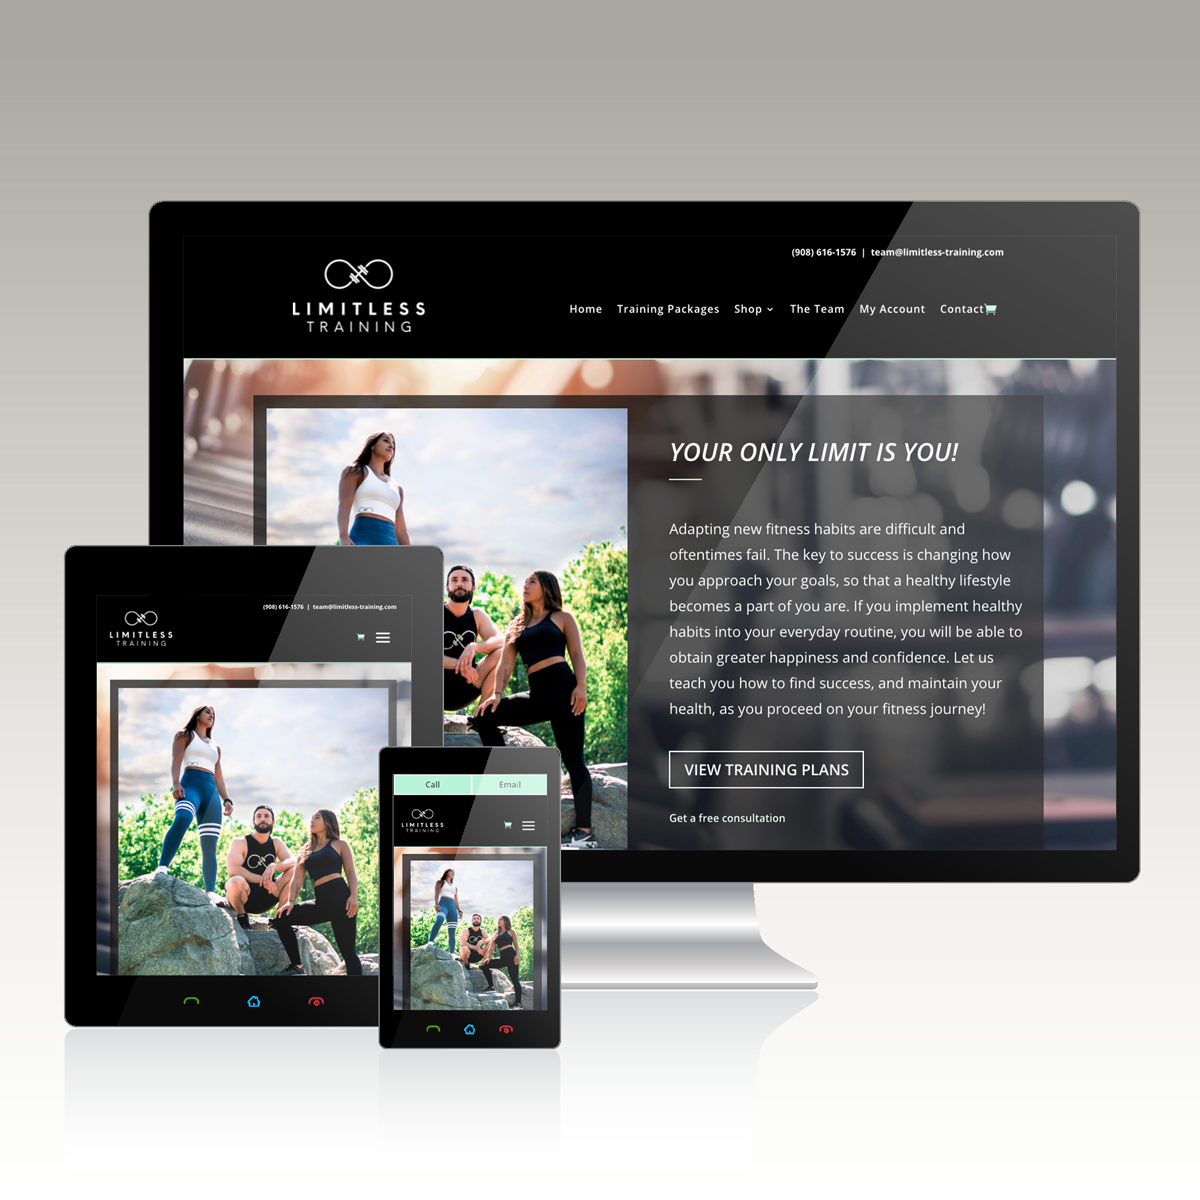 Example of a website built for a personal trainer